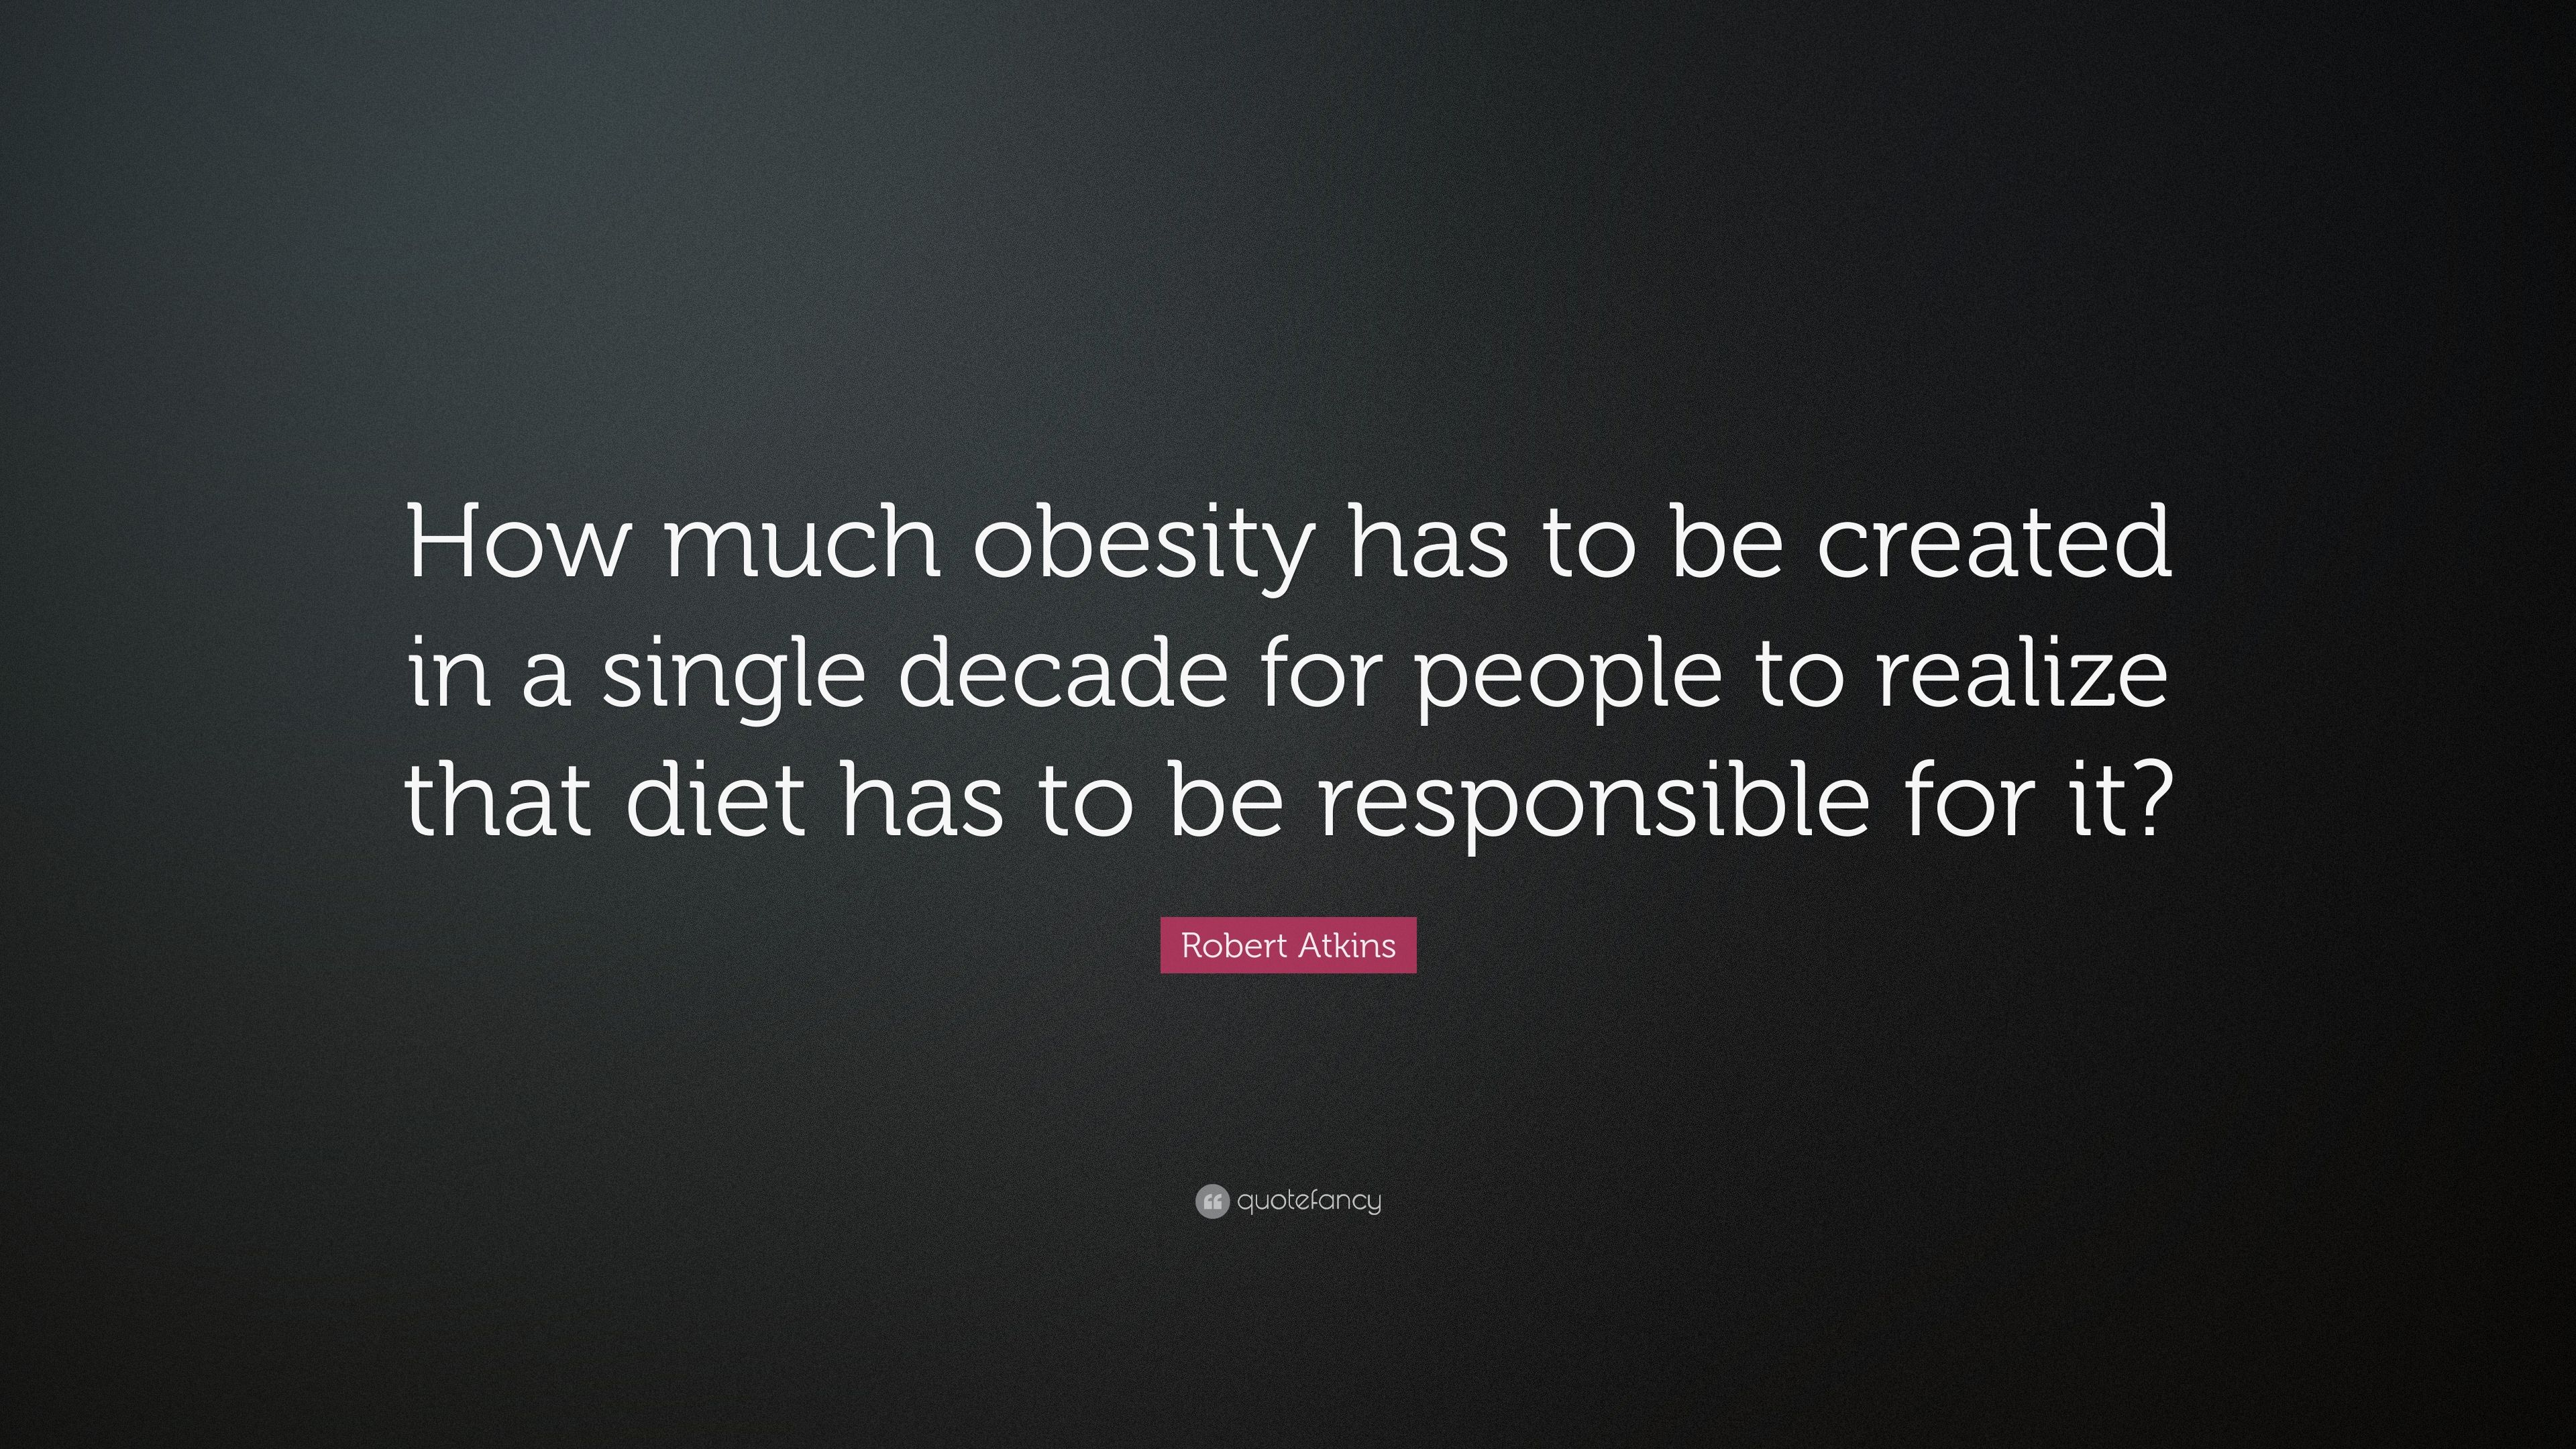 Robert Atkins Quote How Much Obesity Has To Be Created In A Single Decade For People To Realize That Diet Has To Be Responsible For It 7 Wallpapers Quotefancy